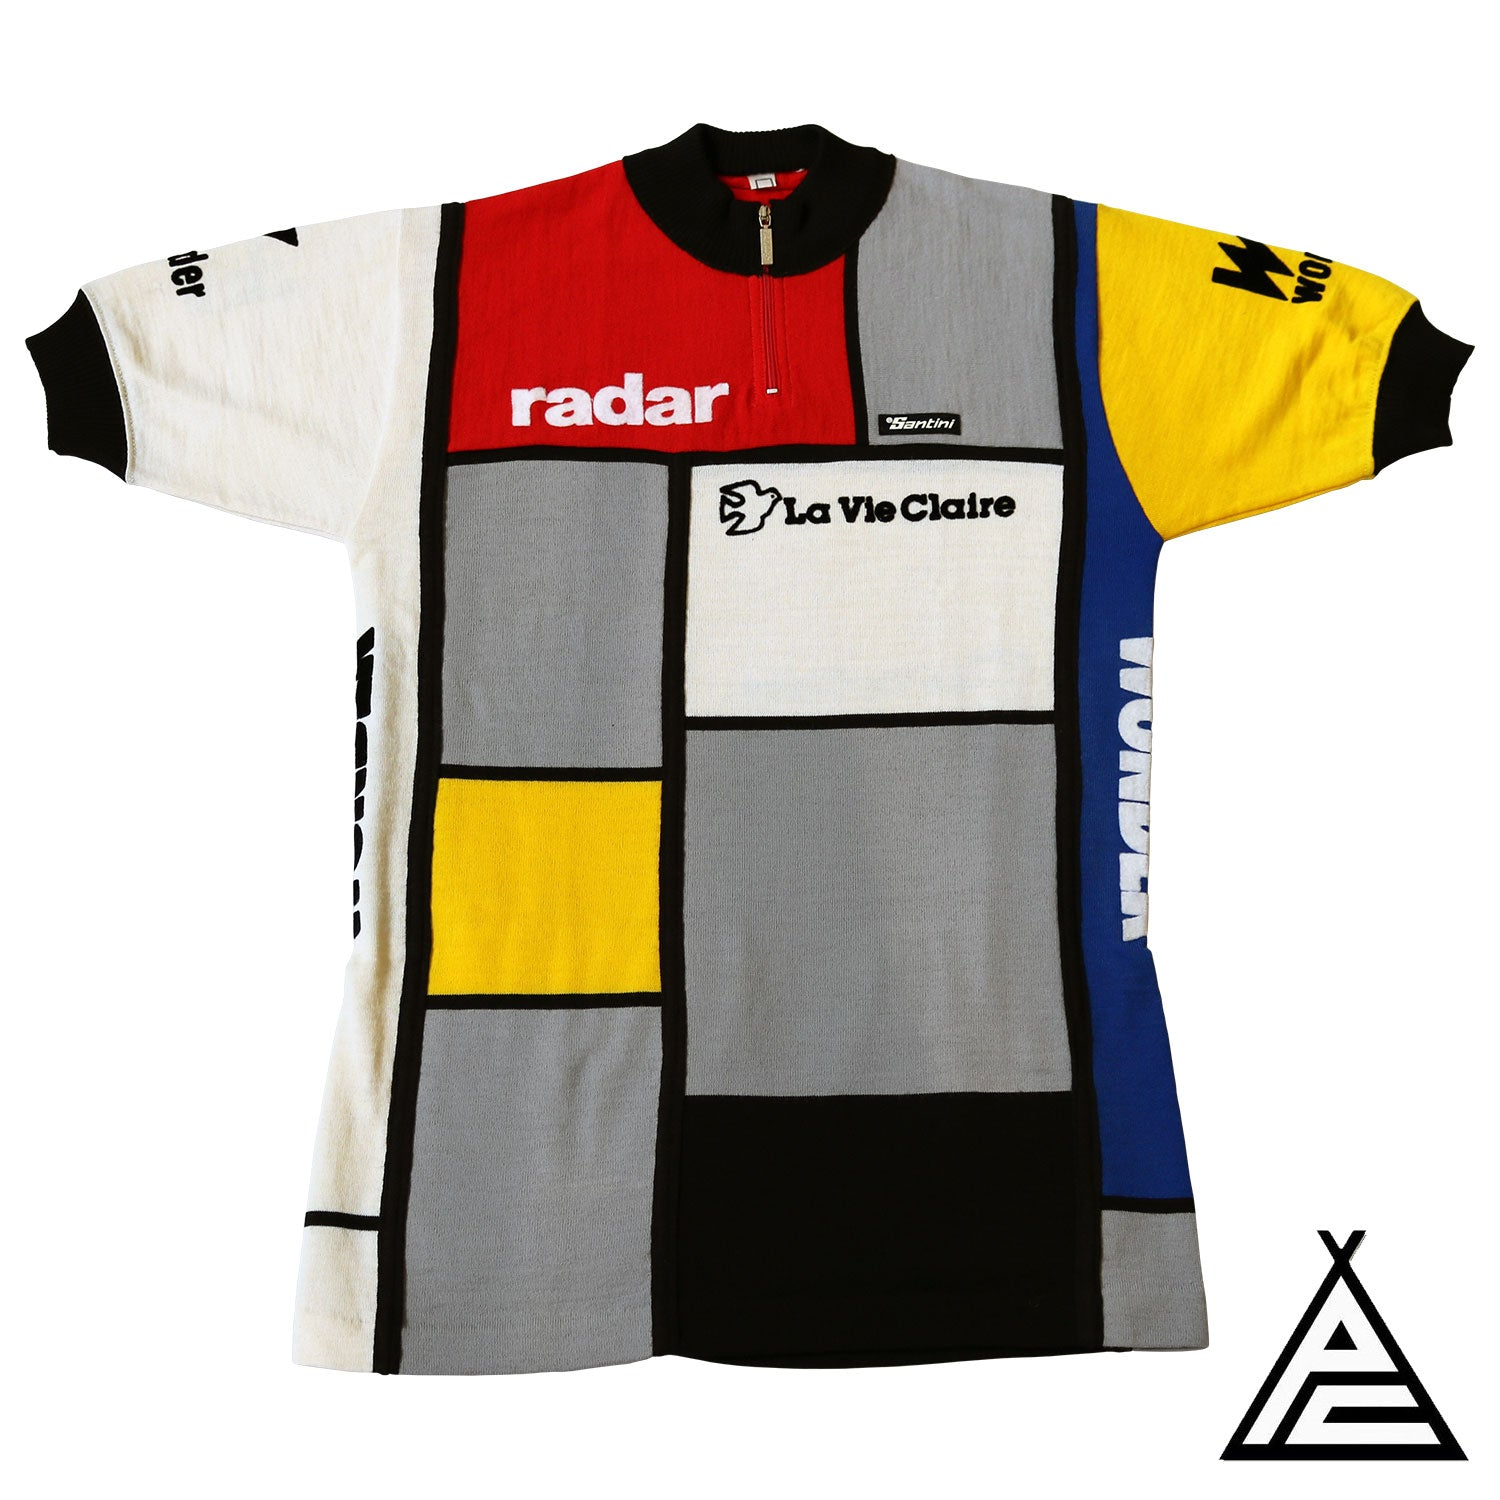 La Vie Claire Radar Wonder 1985 Wool Team Jersey